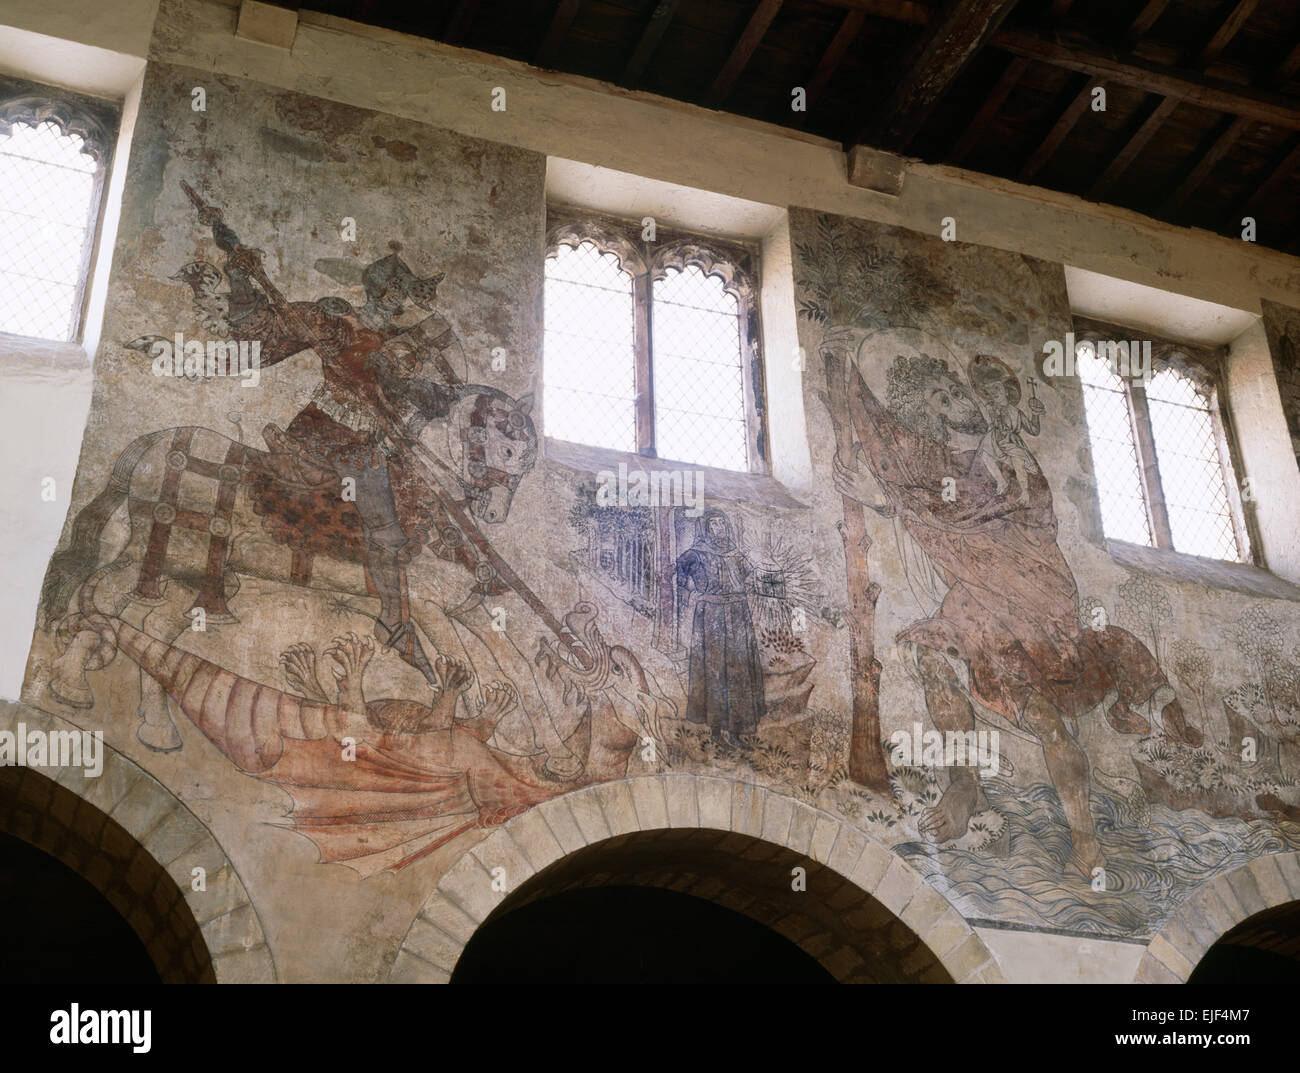 Medieval (1450-60) frescoes in Pickering church, North Yorkshire, depicting St George and the Dragon, and St Christopher - Stock Image